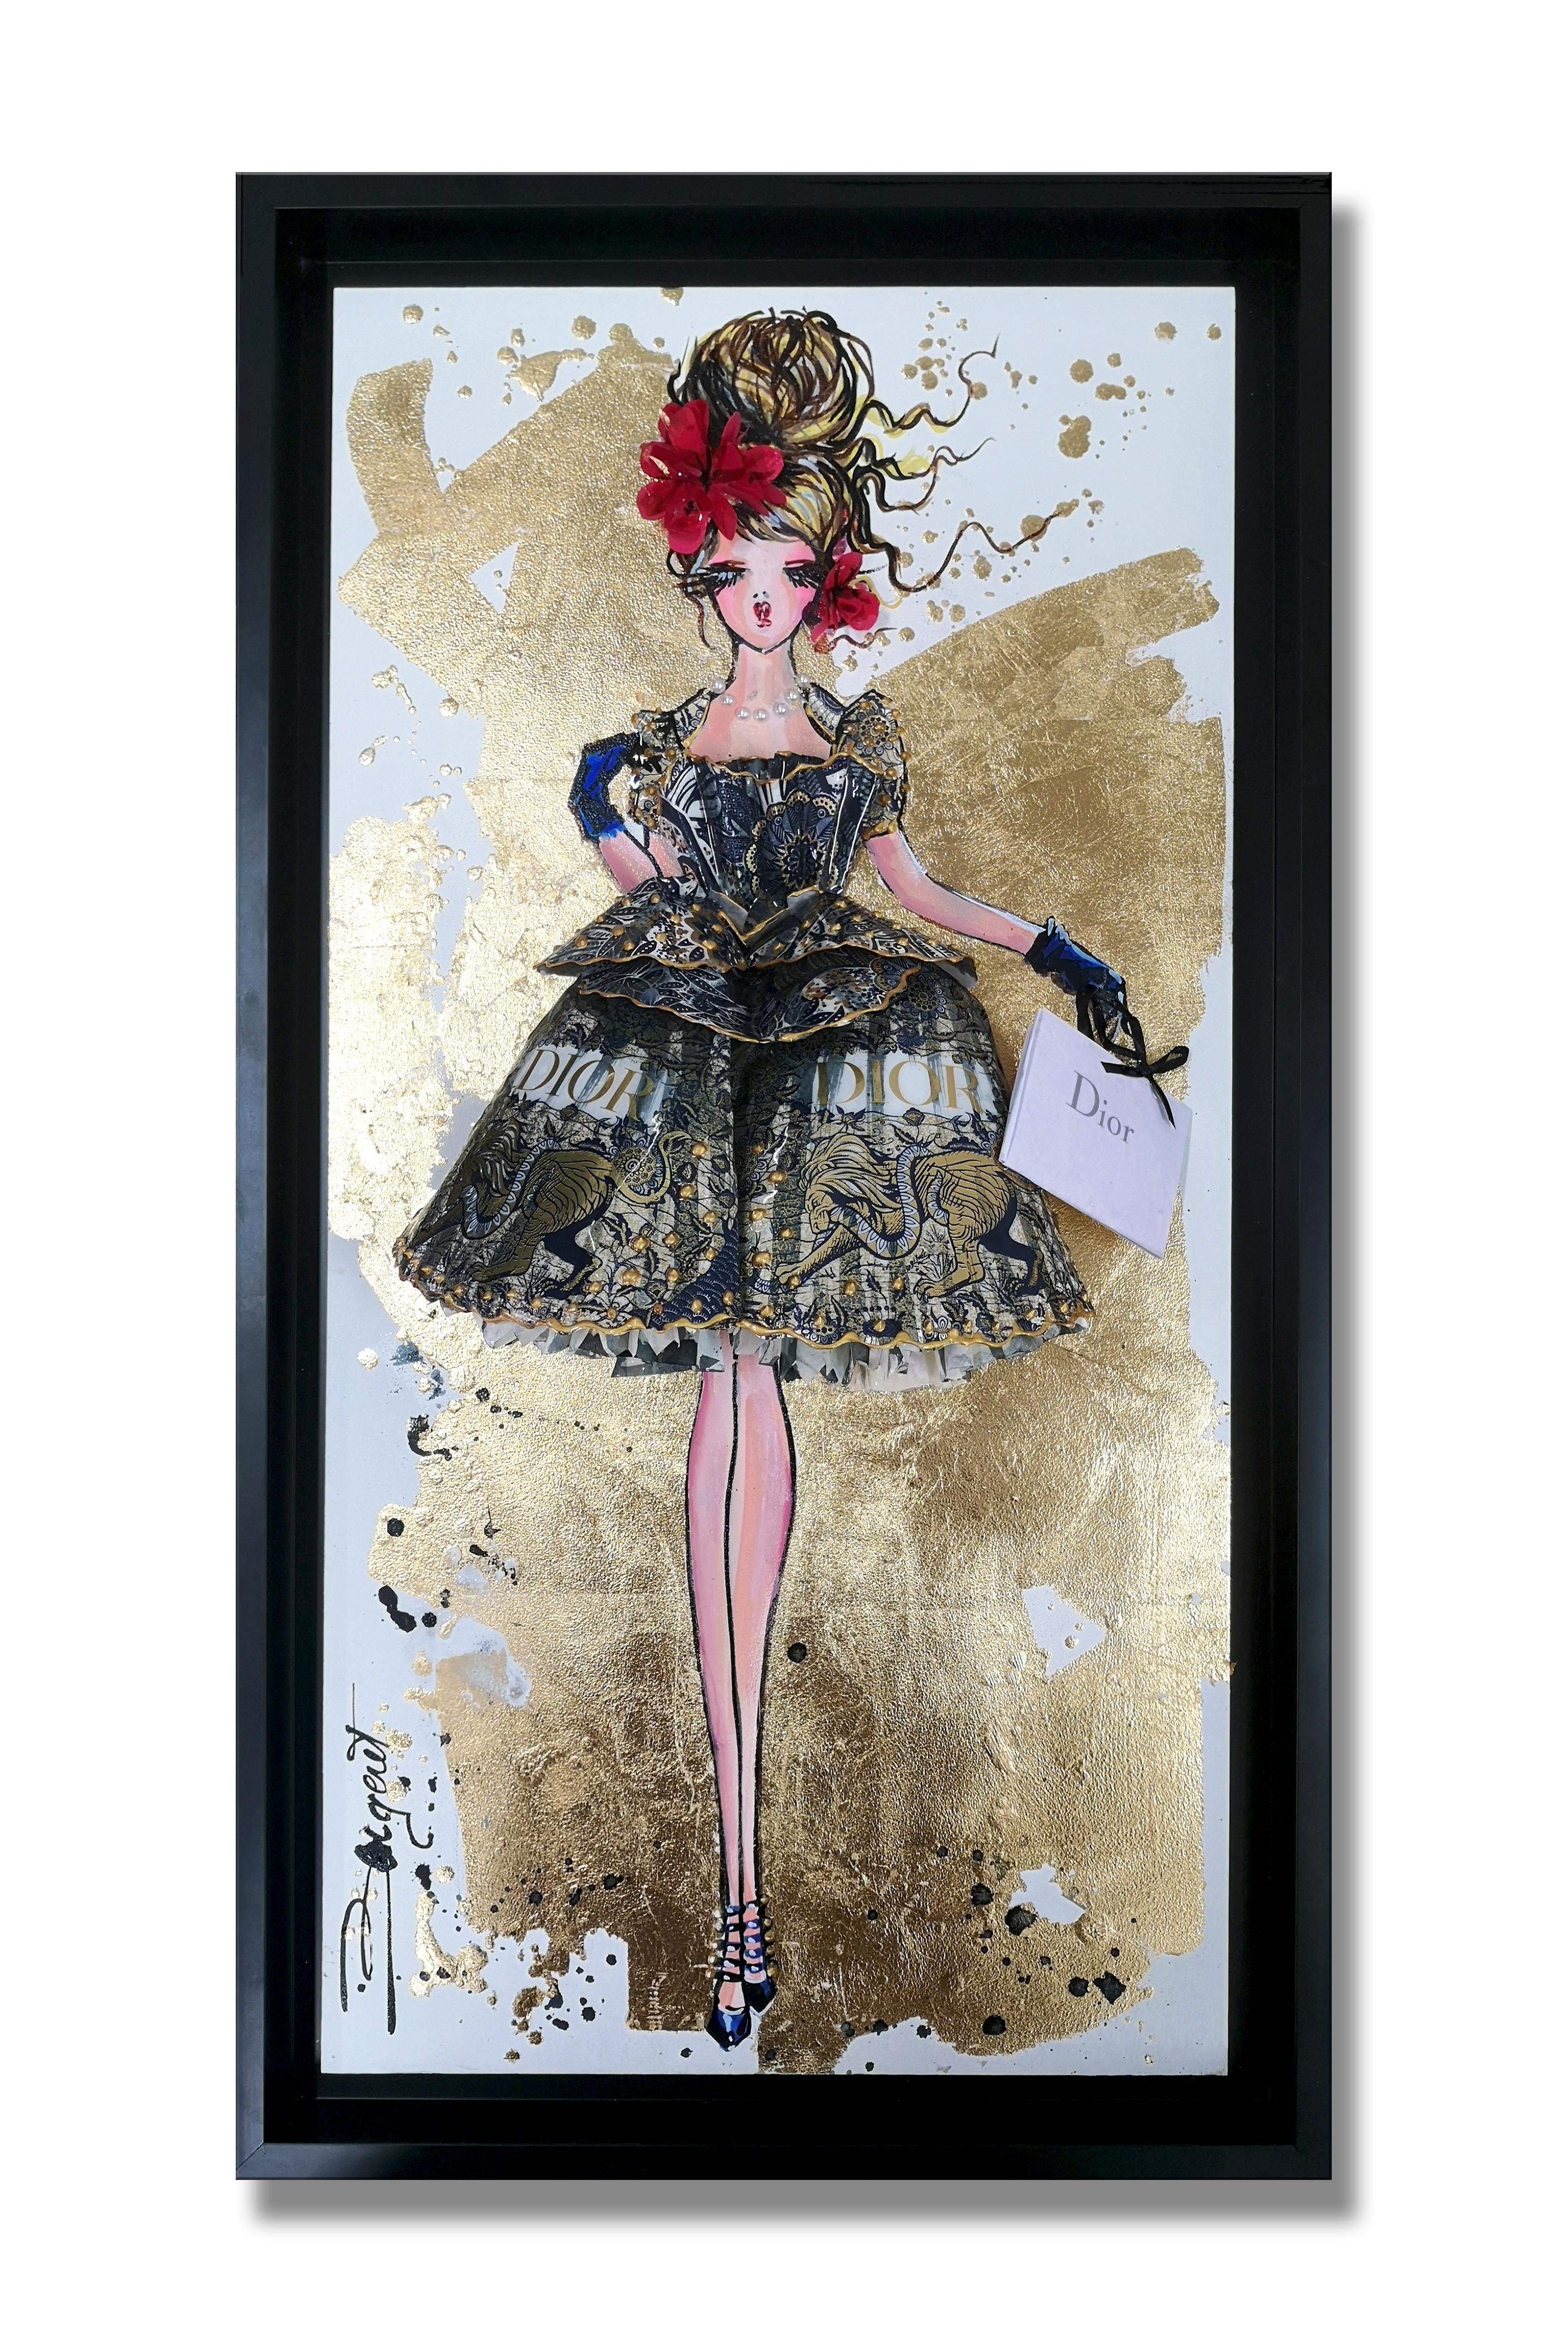 DIOR HOMMAGE - 3D Sculpture and painting on wood